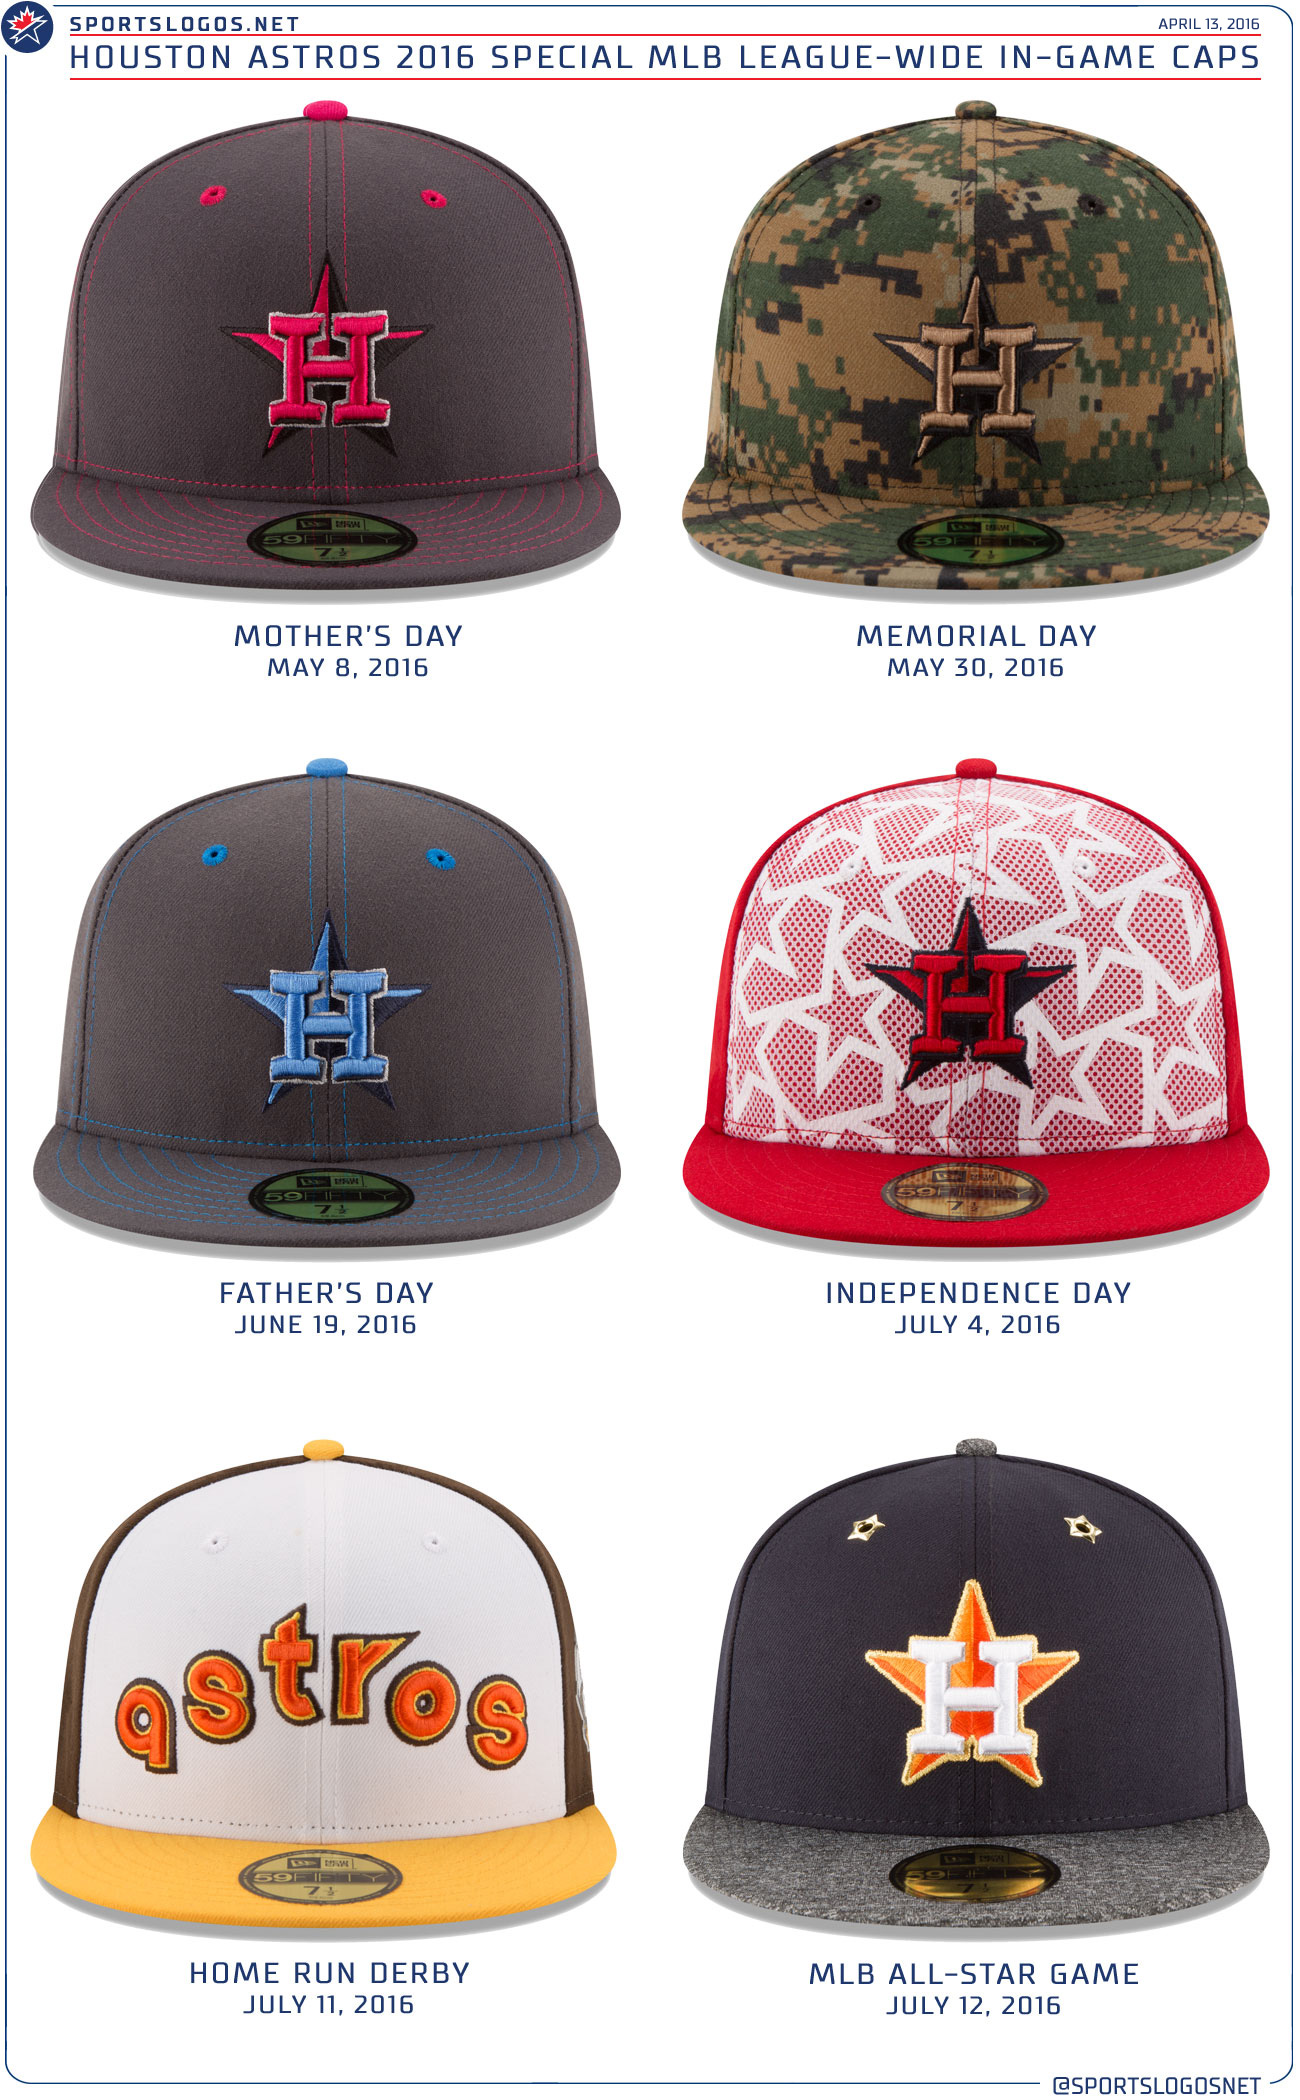 finest selection 08fff d2a9a Special Event Houston Astros Caps for 2016 : Astros